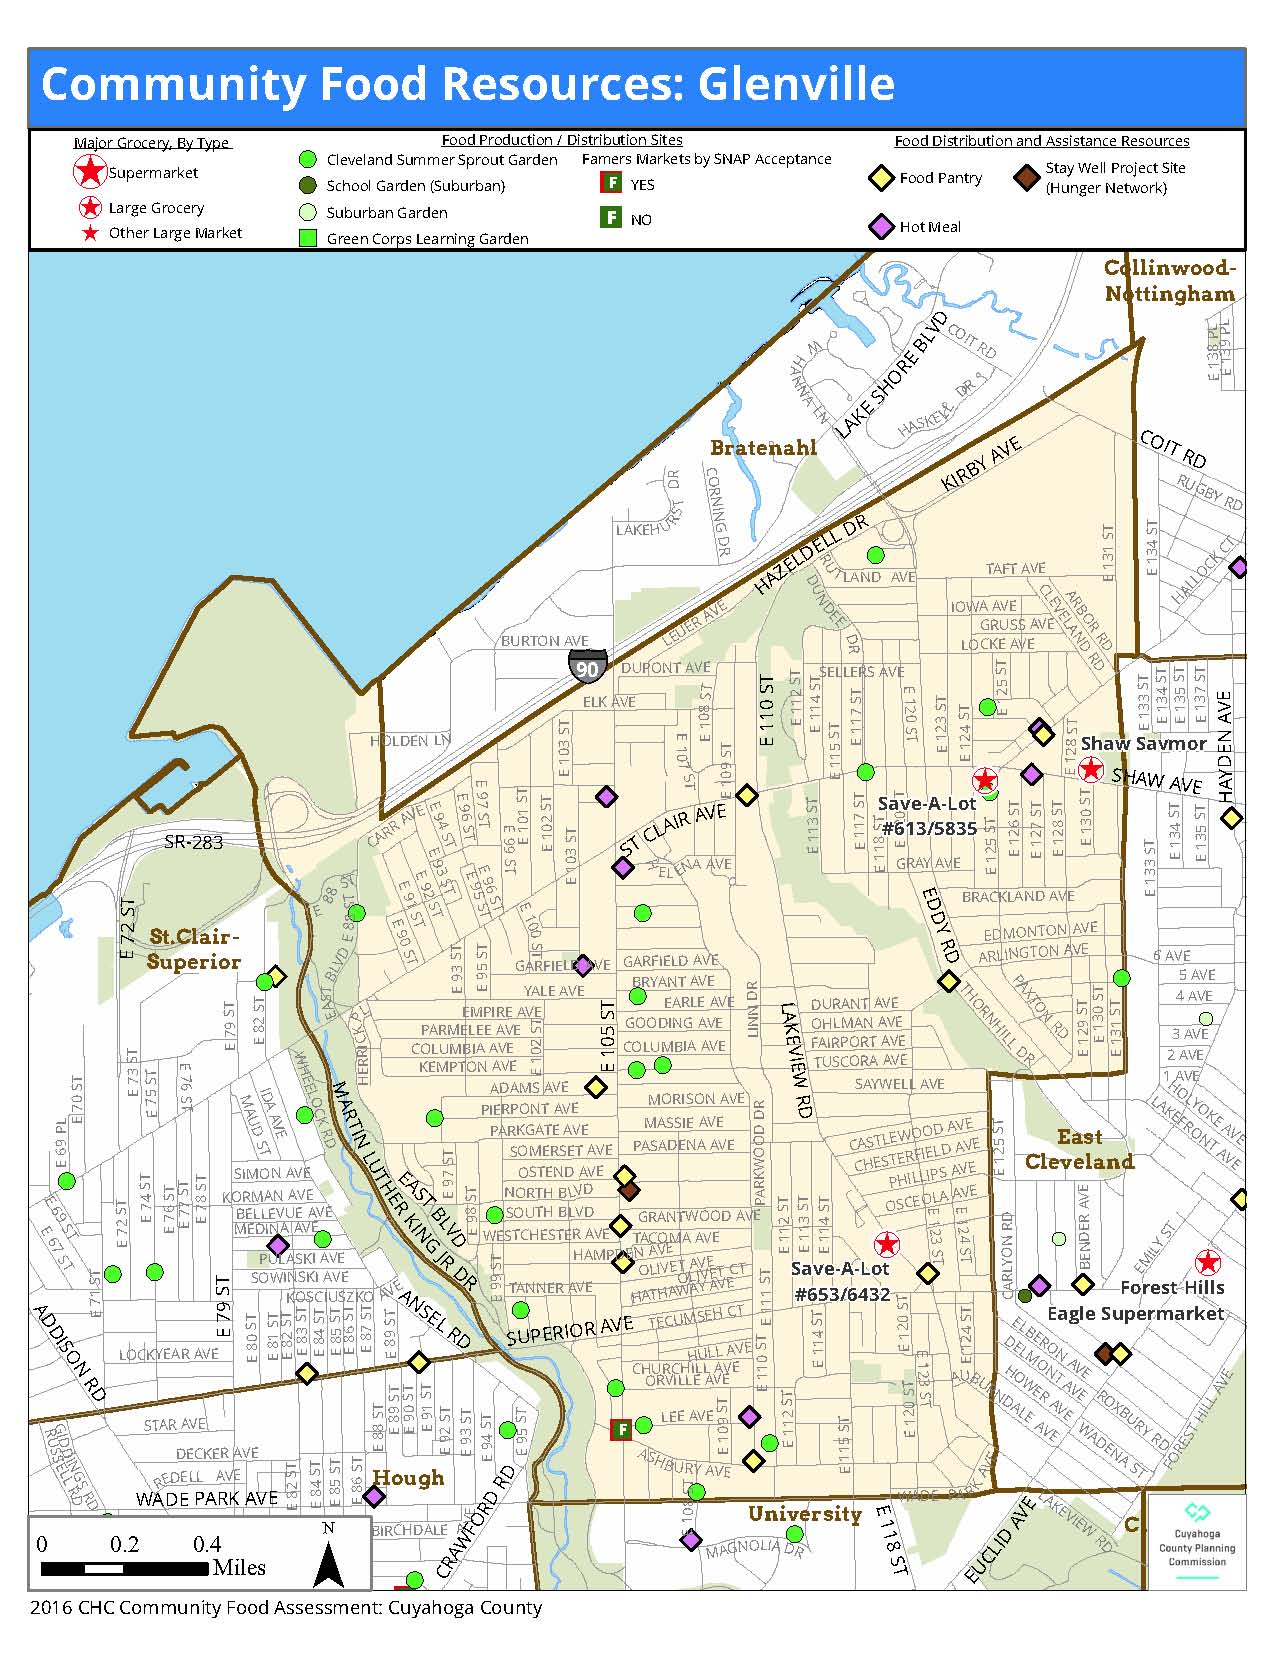 CCBH Demographic Map Of Cleveland on cleveland city map, ohio msa map, cleveland topographic map, cleveland tx, cleveland land use map, cleveland racial map, king north carolina map, akron ward map, cleveland community map, cleveland georgia map, cleveland ohio ward map, cleveland historical map, cleveland county sheriff logo, cleveland school map, cleveland akron map, cleveland market map, cleveland crime map, missouri research park map, cleveland political map, cleveland state map,